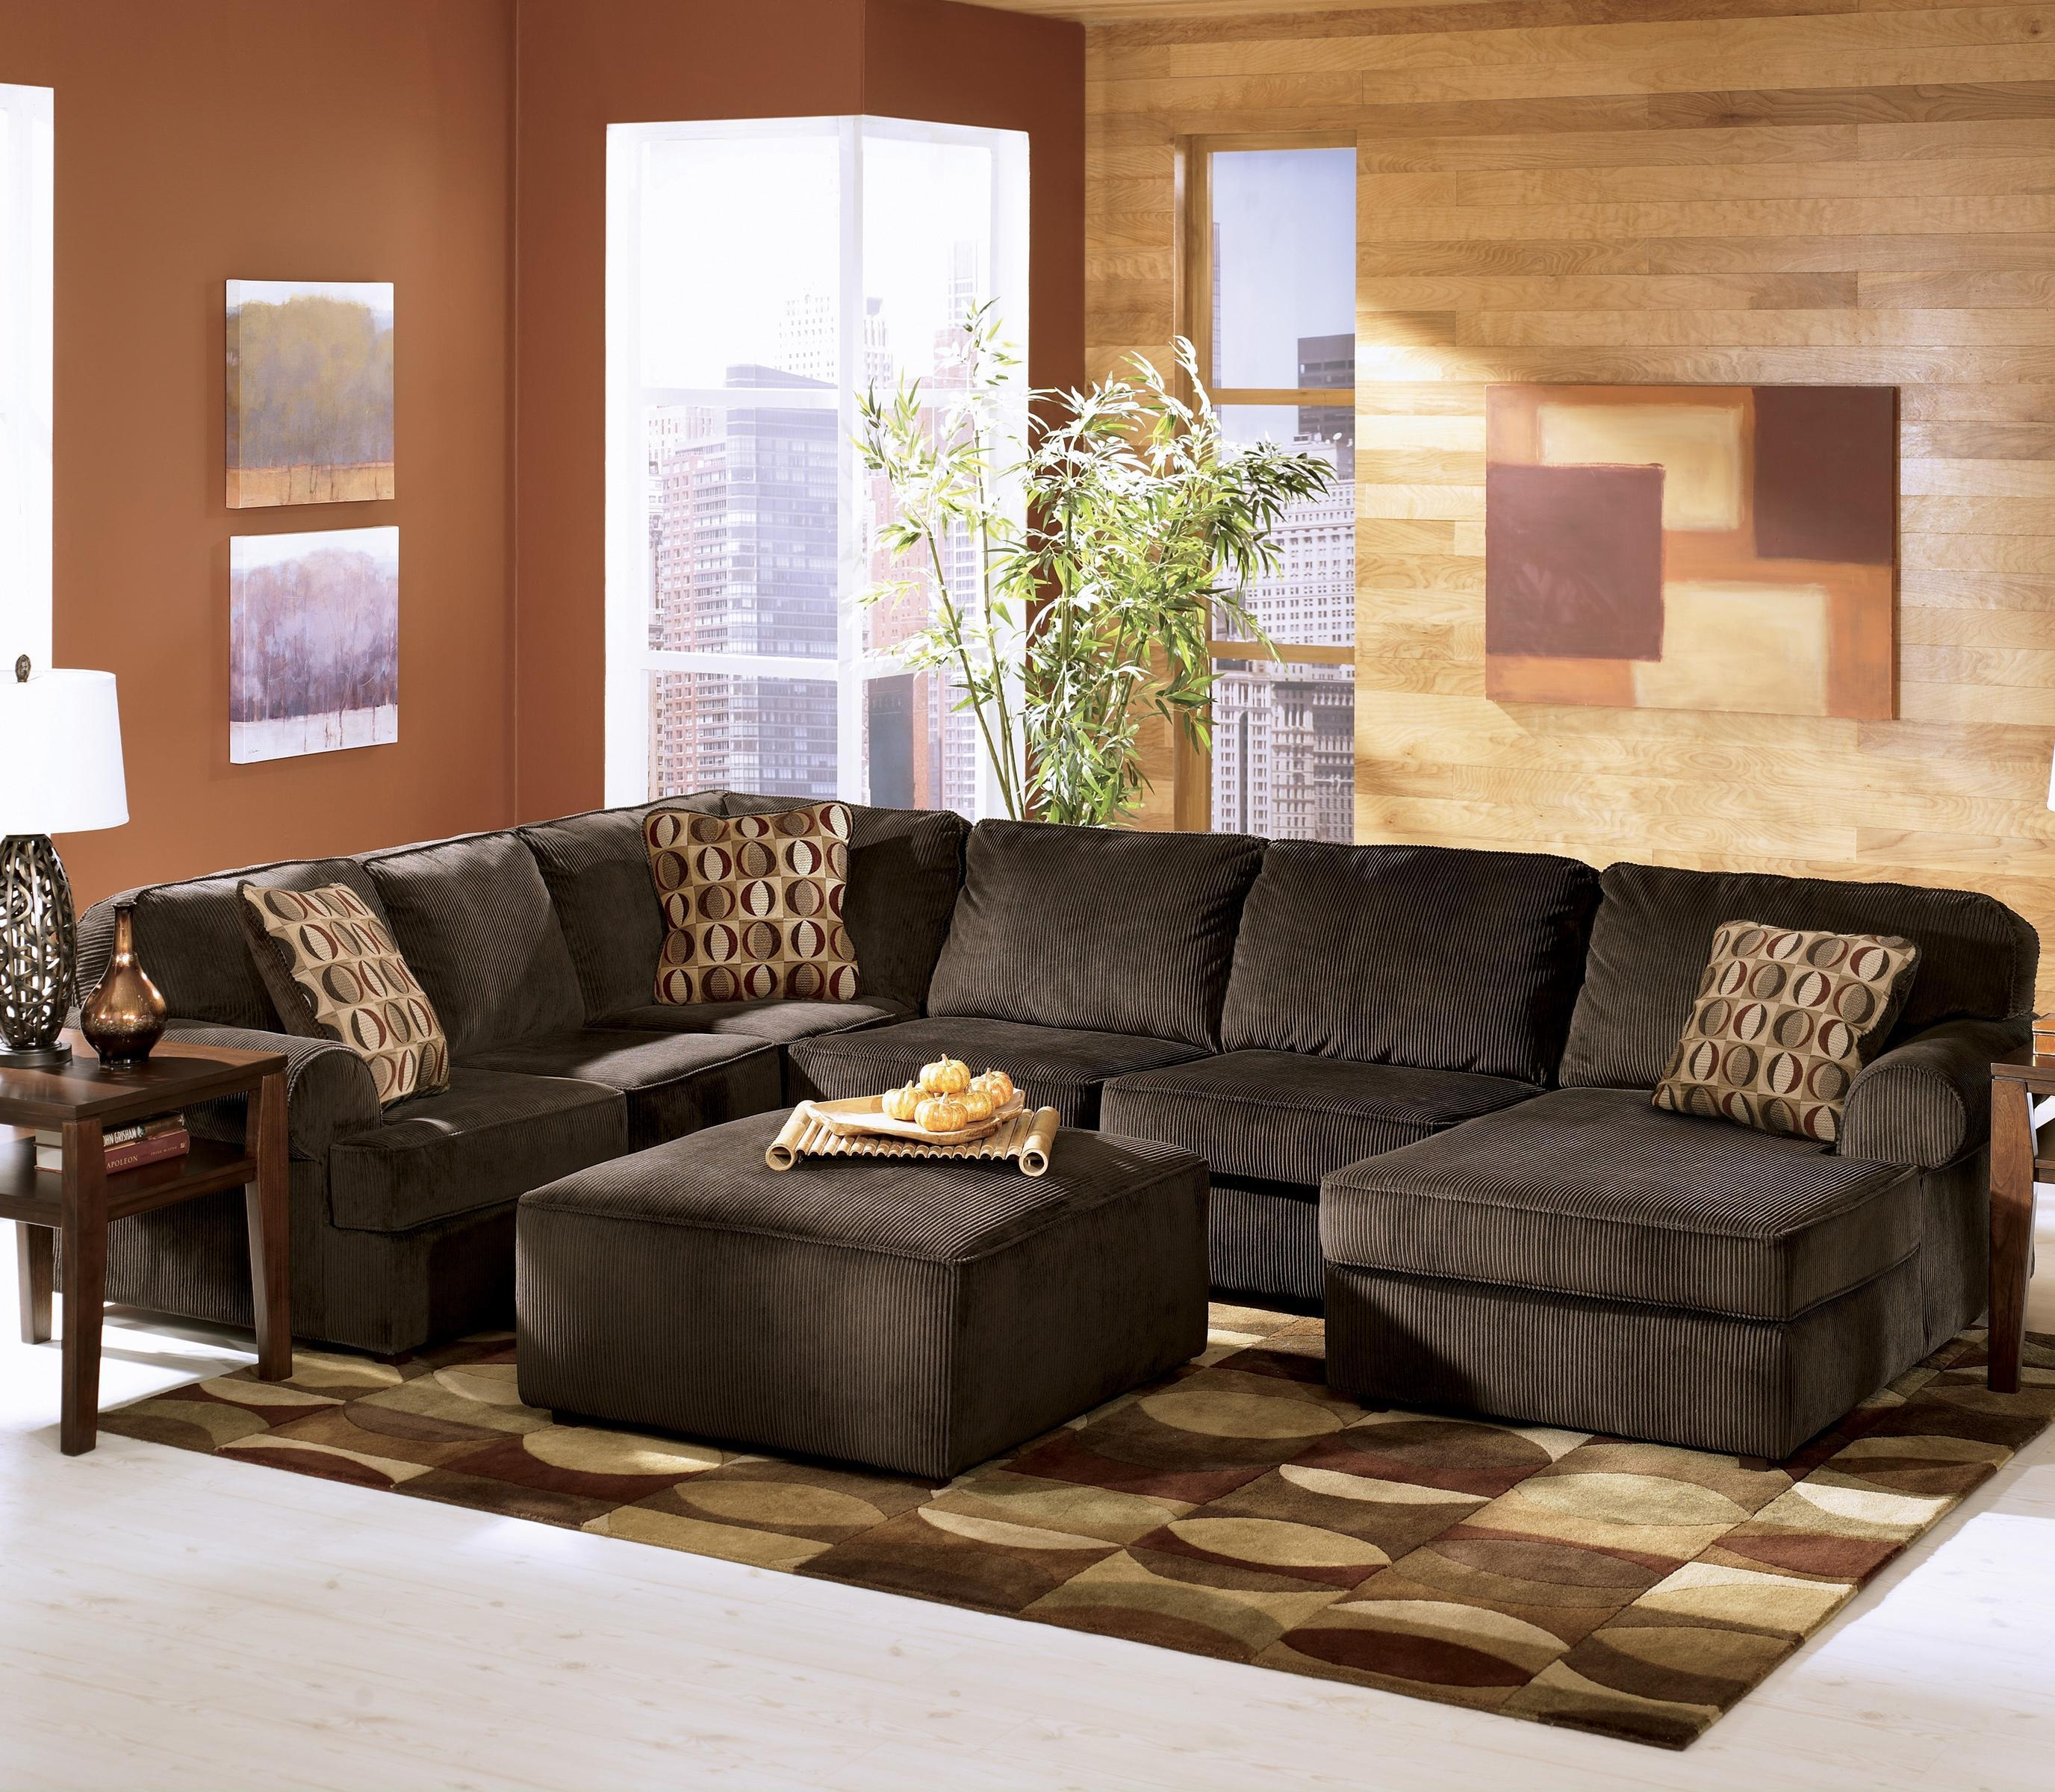 ashley furniture living room sectionals 20 inspirations corduroy sectional sofas sofa ideas 18656